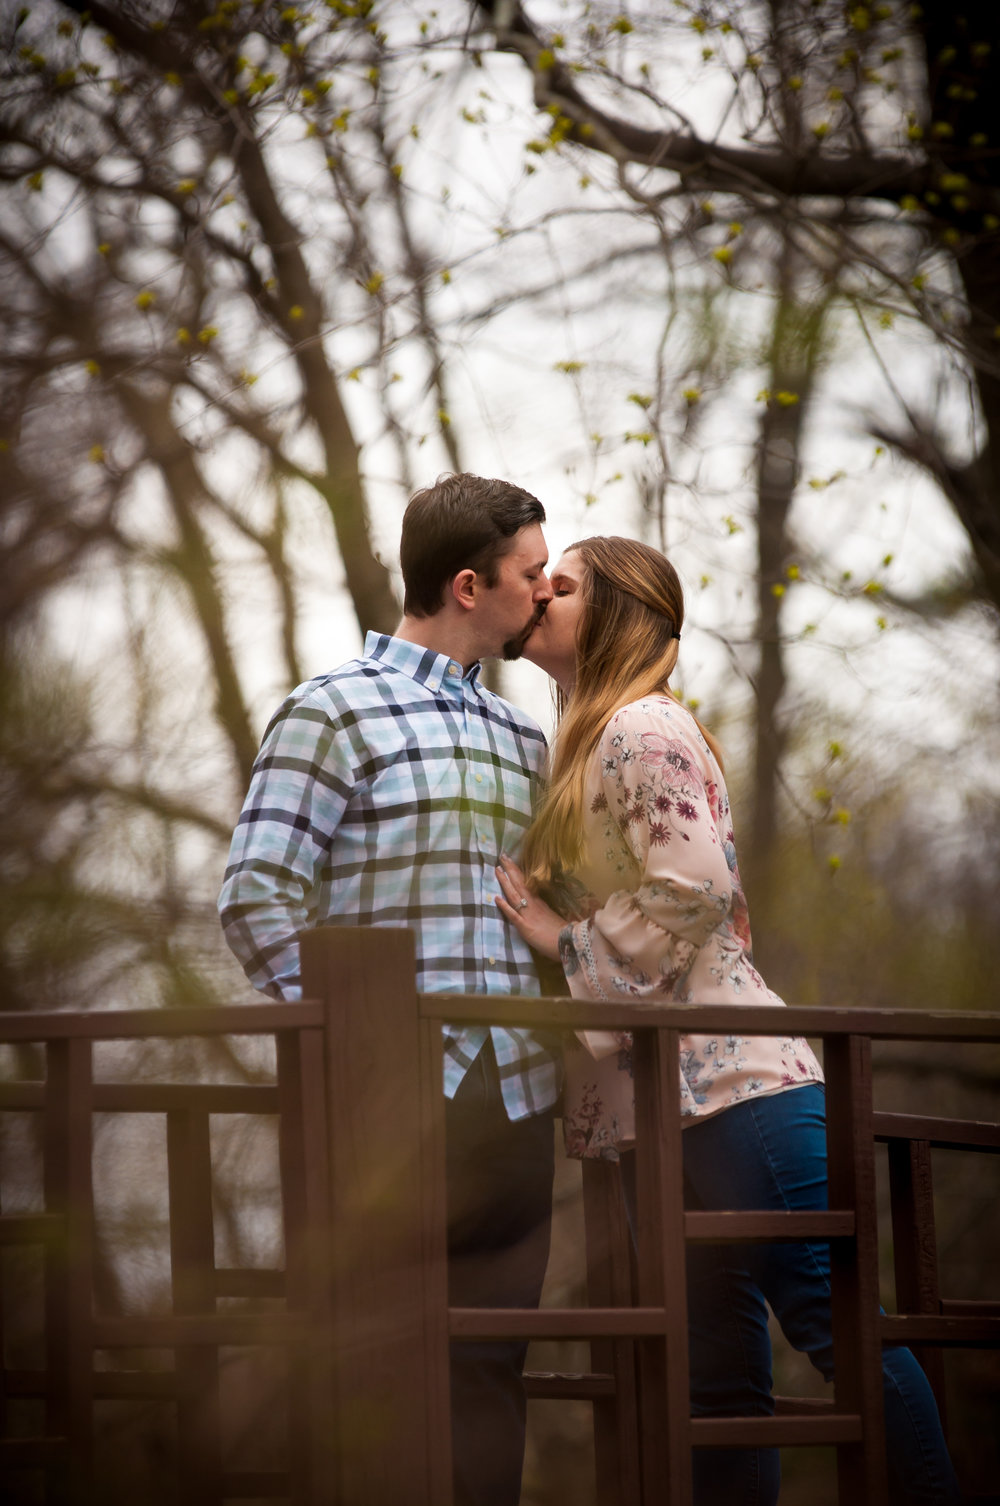 CarrieWestonStudios_Engagement_Wedding_Portraits_NY_Photography_Photographer-2-3.jpg